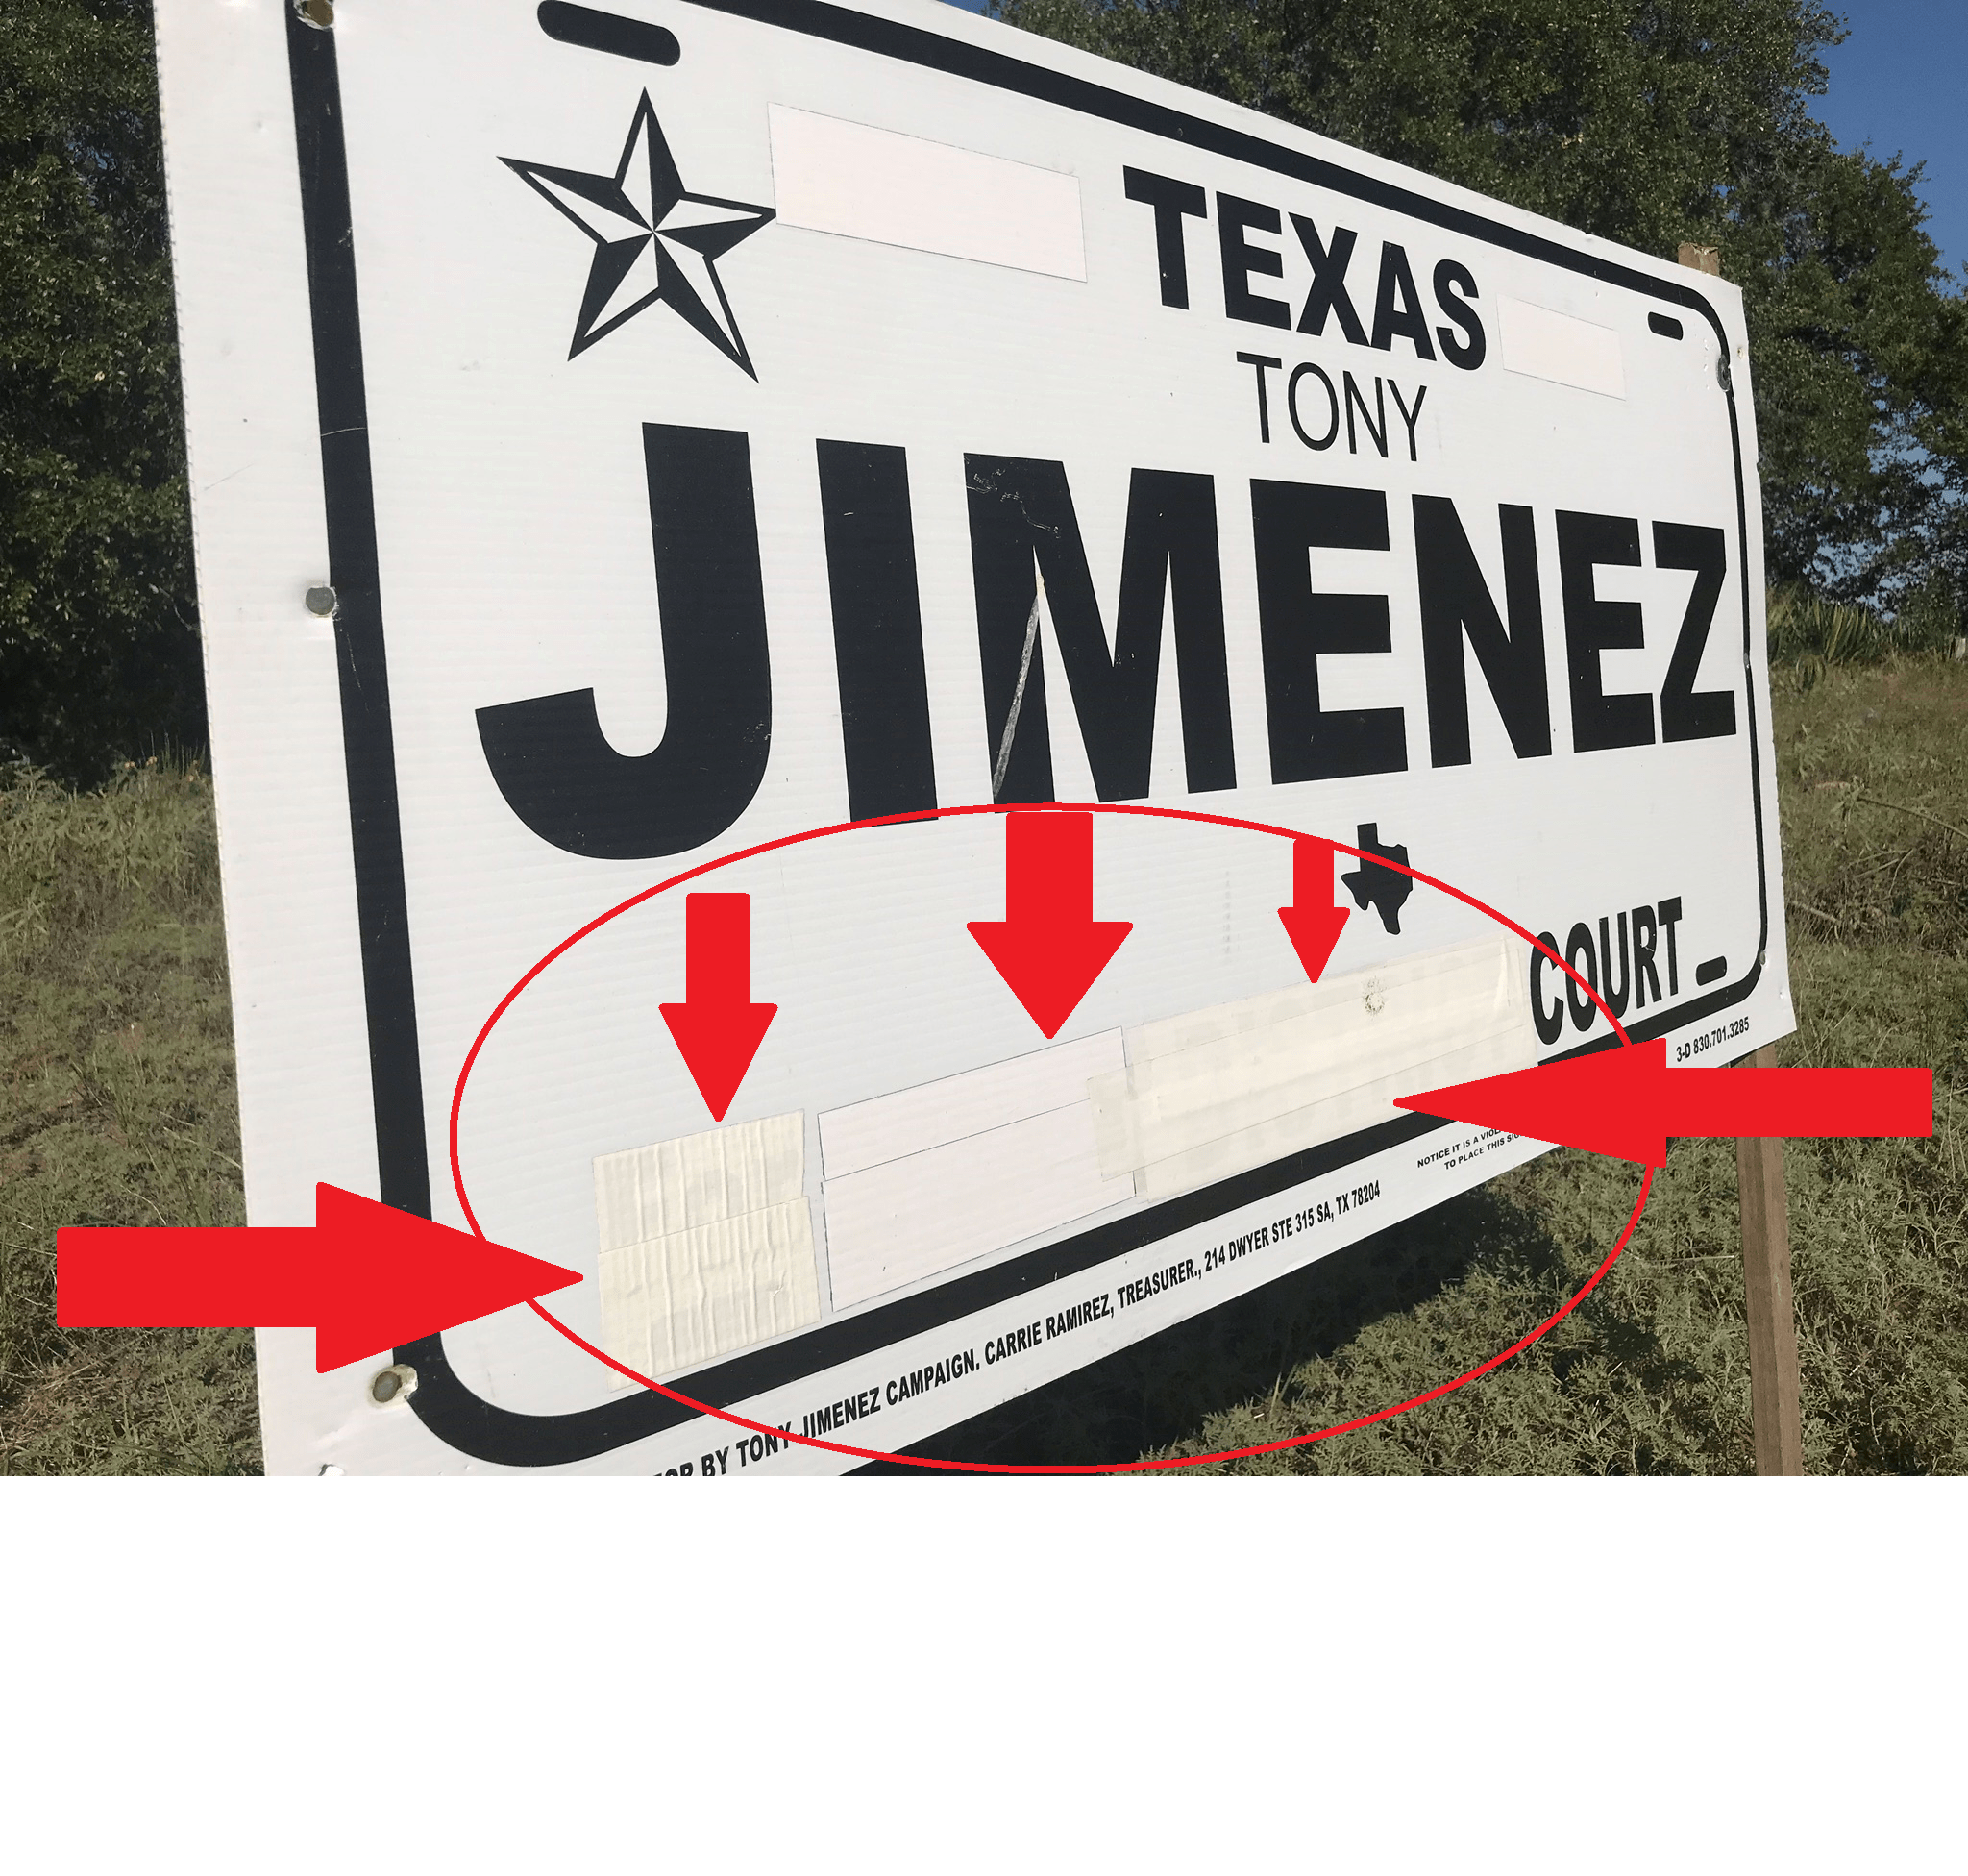 Duct-Taped Over Political Sign